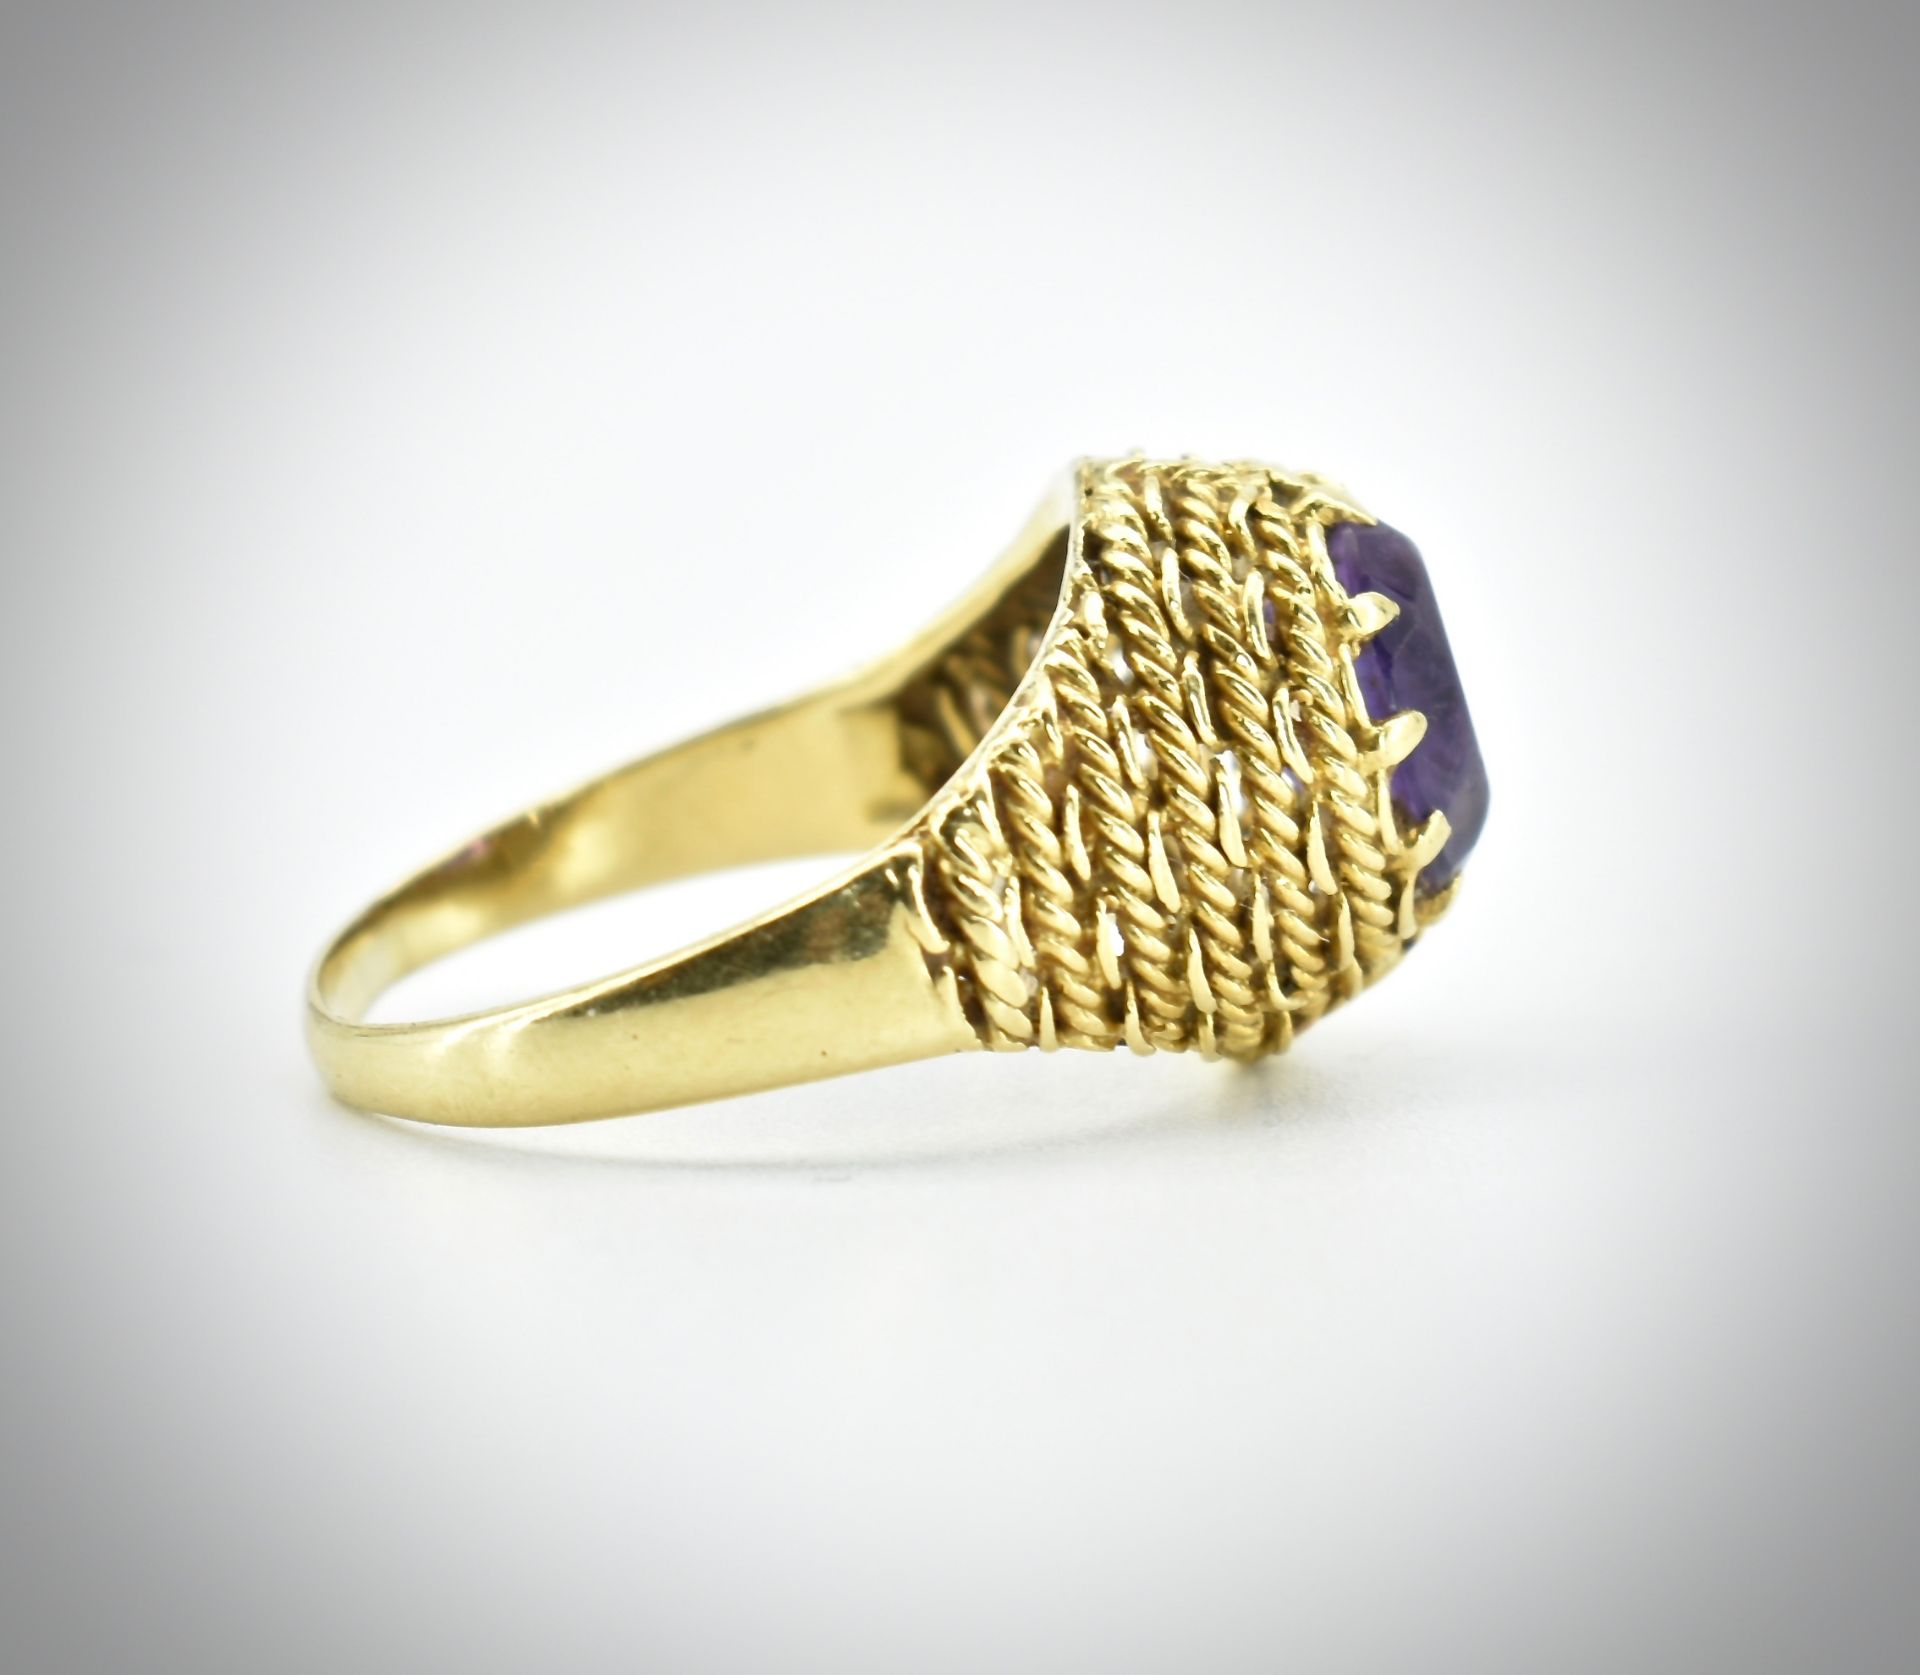 18ct Gold & Amethyst Ring - Image 4 of 7